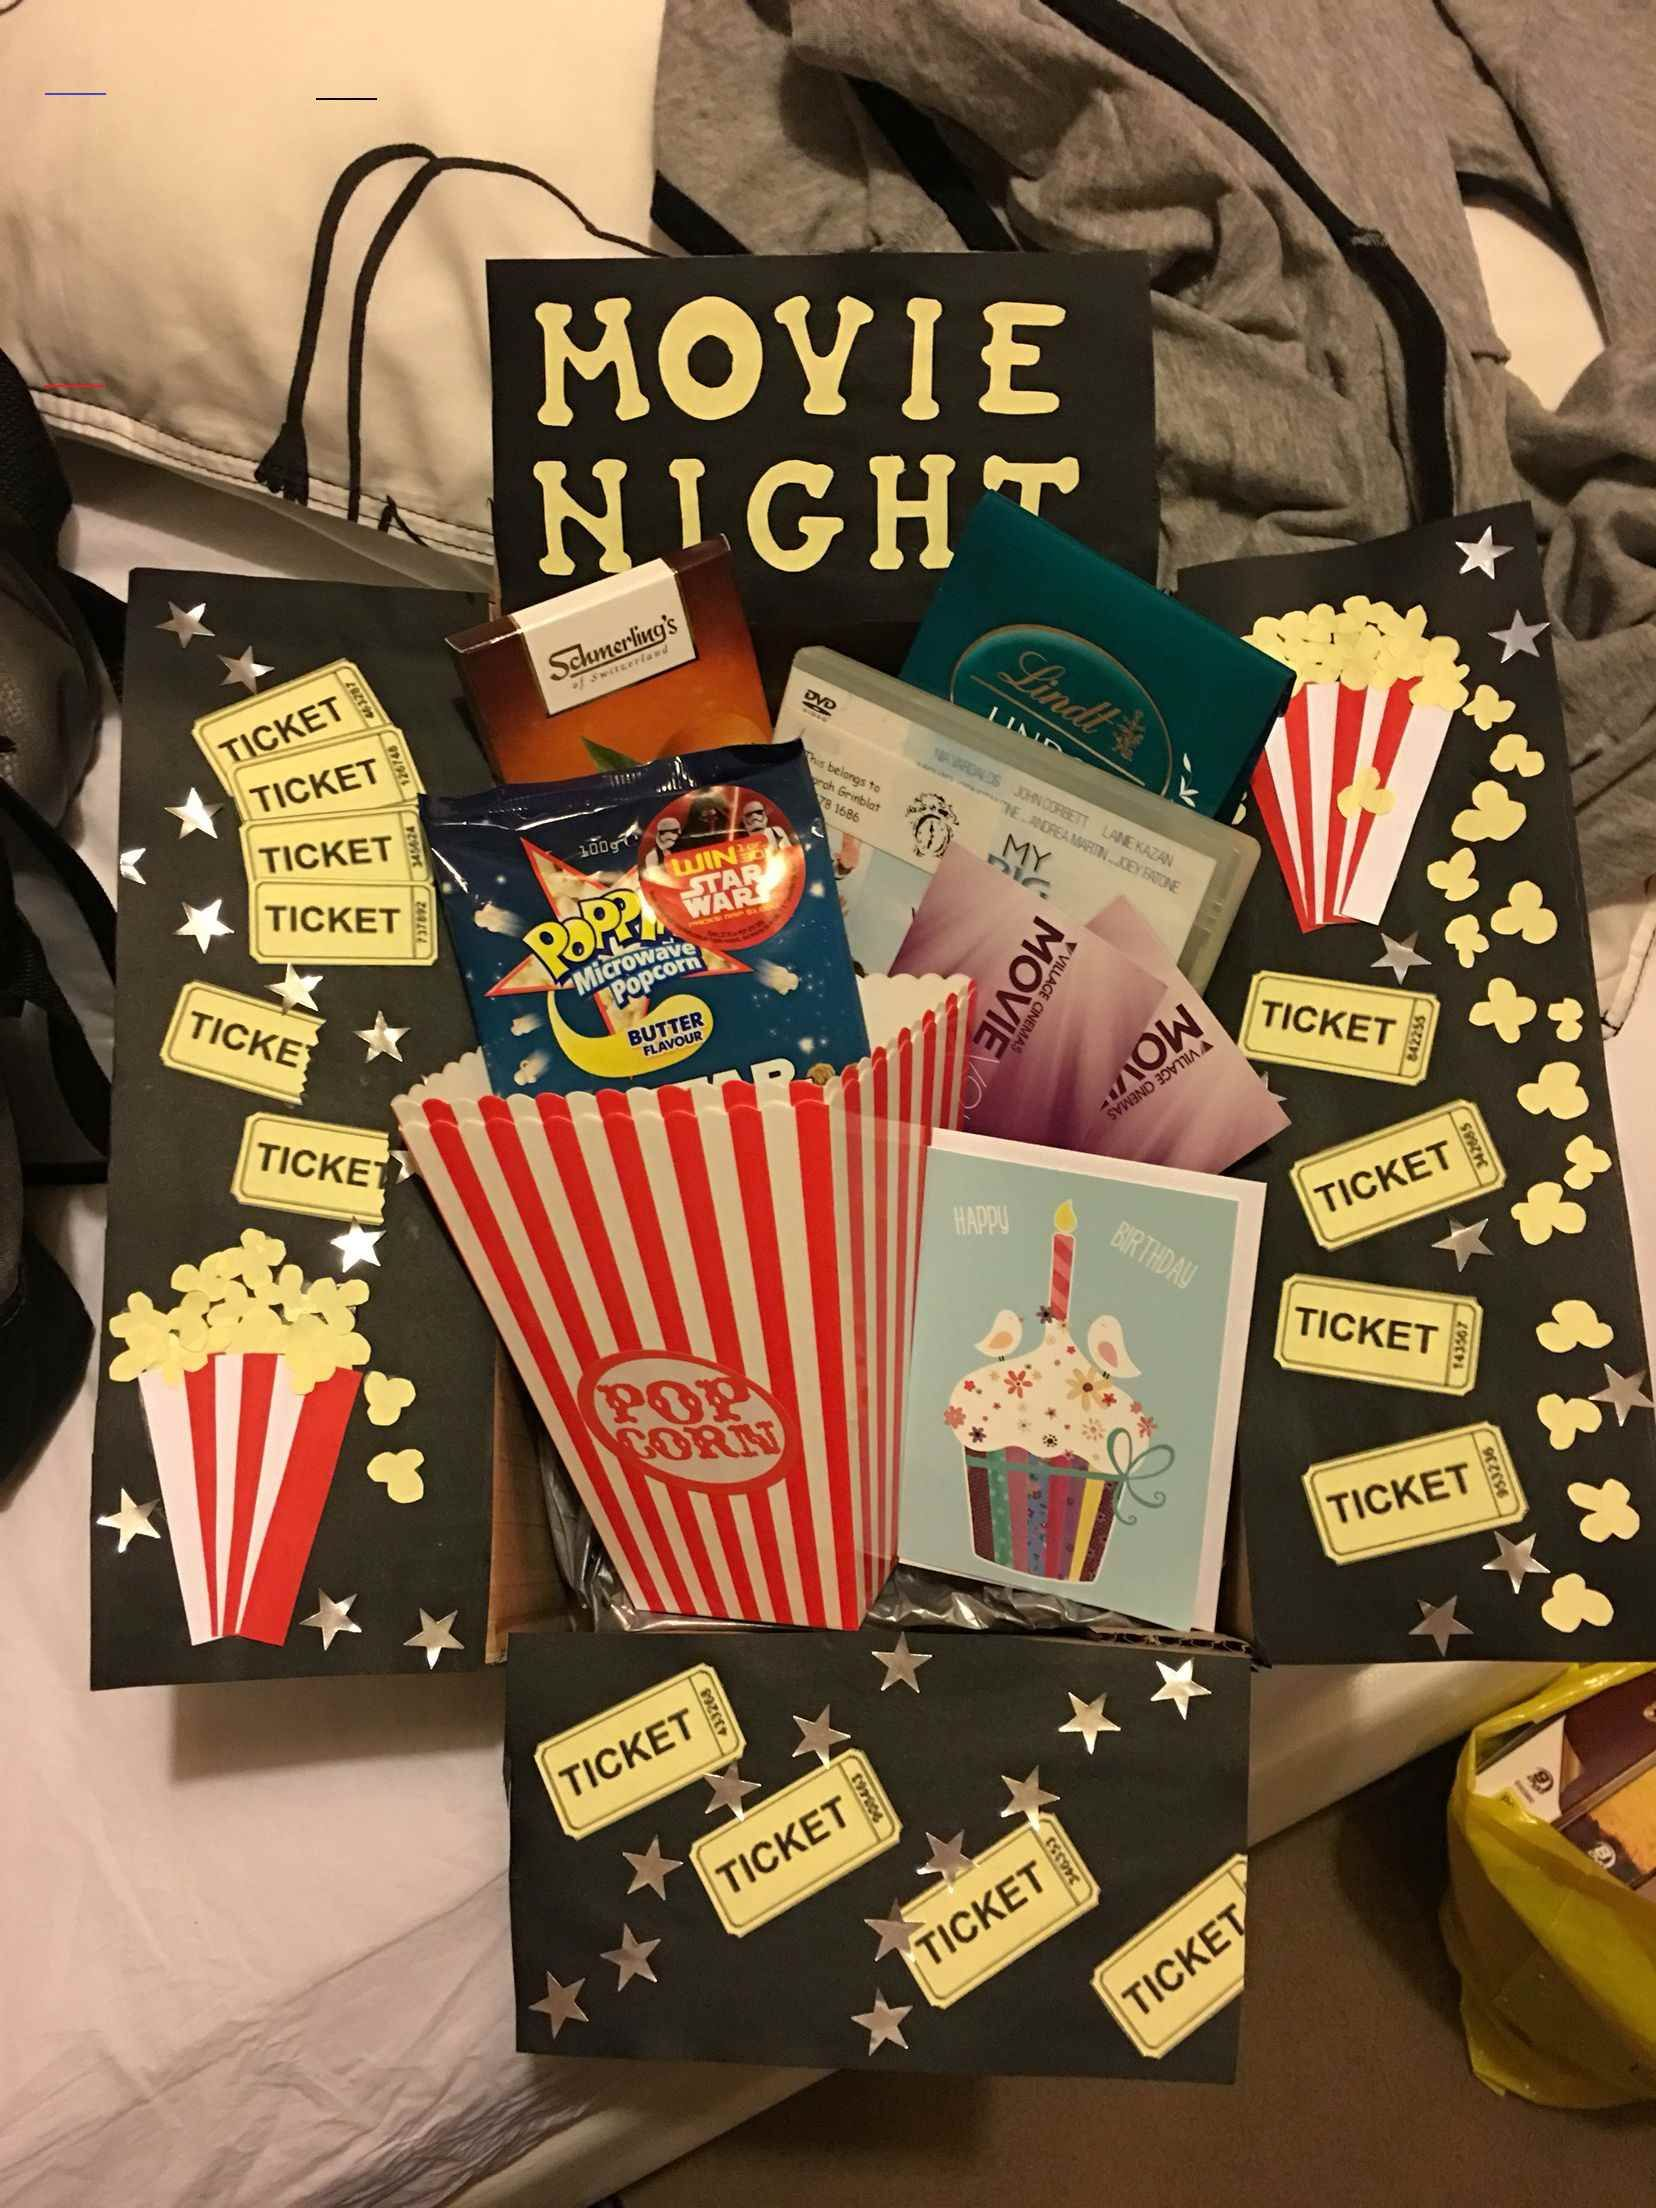 kinoboxgeschenk in 2020 Movie night gift, Sister